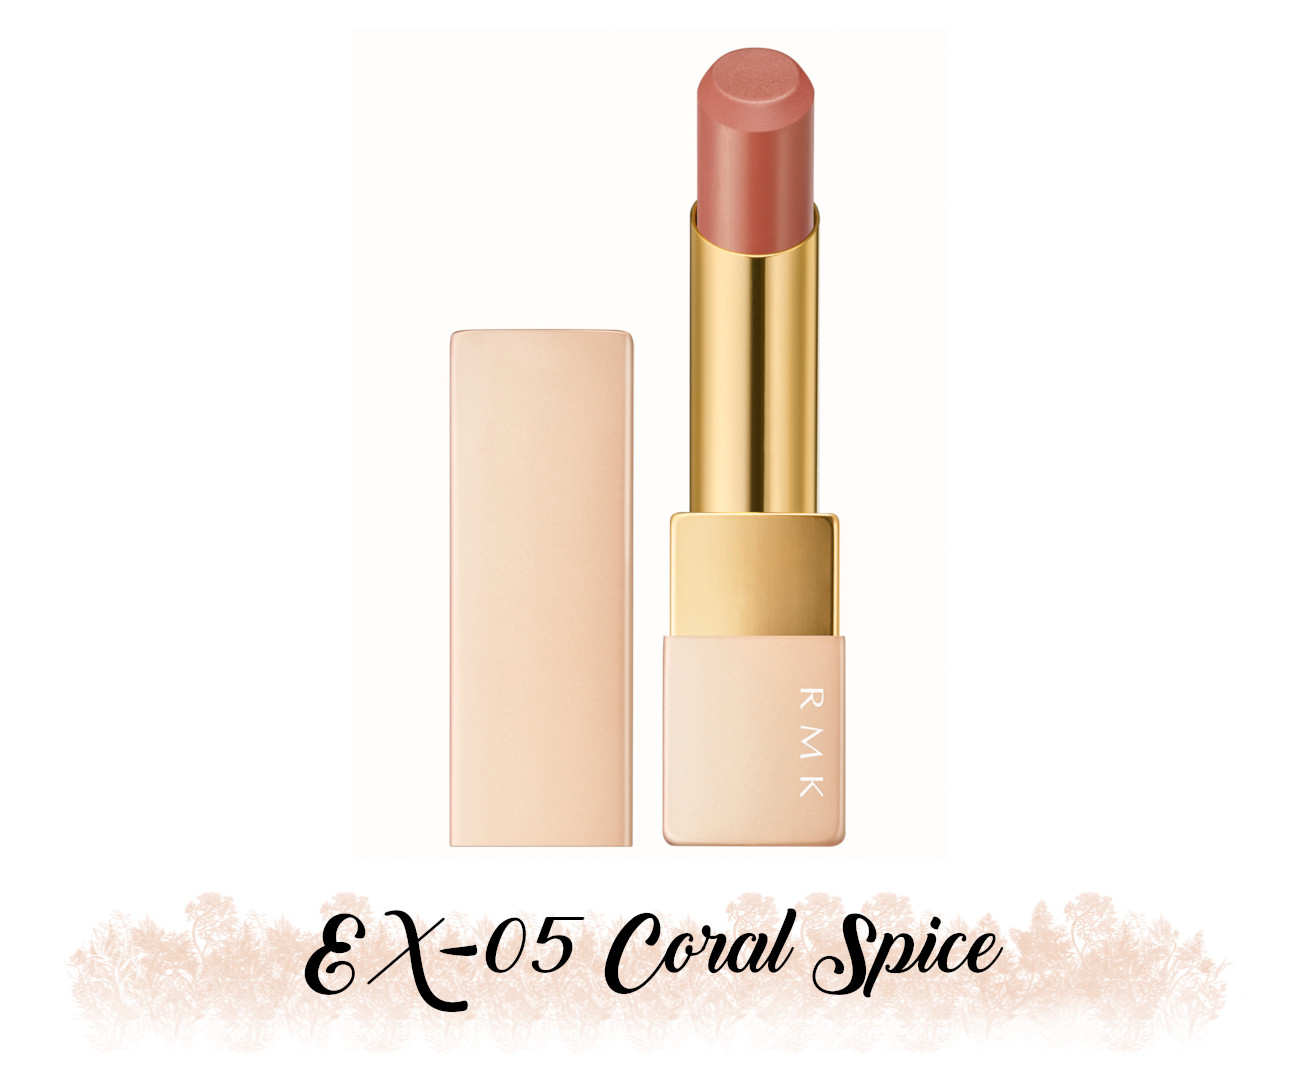 RMK Fall 2021 Collection Rosewood Daydream Lipstick Comfort Airy Shine EX-05 Coral Spice